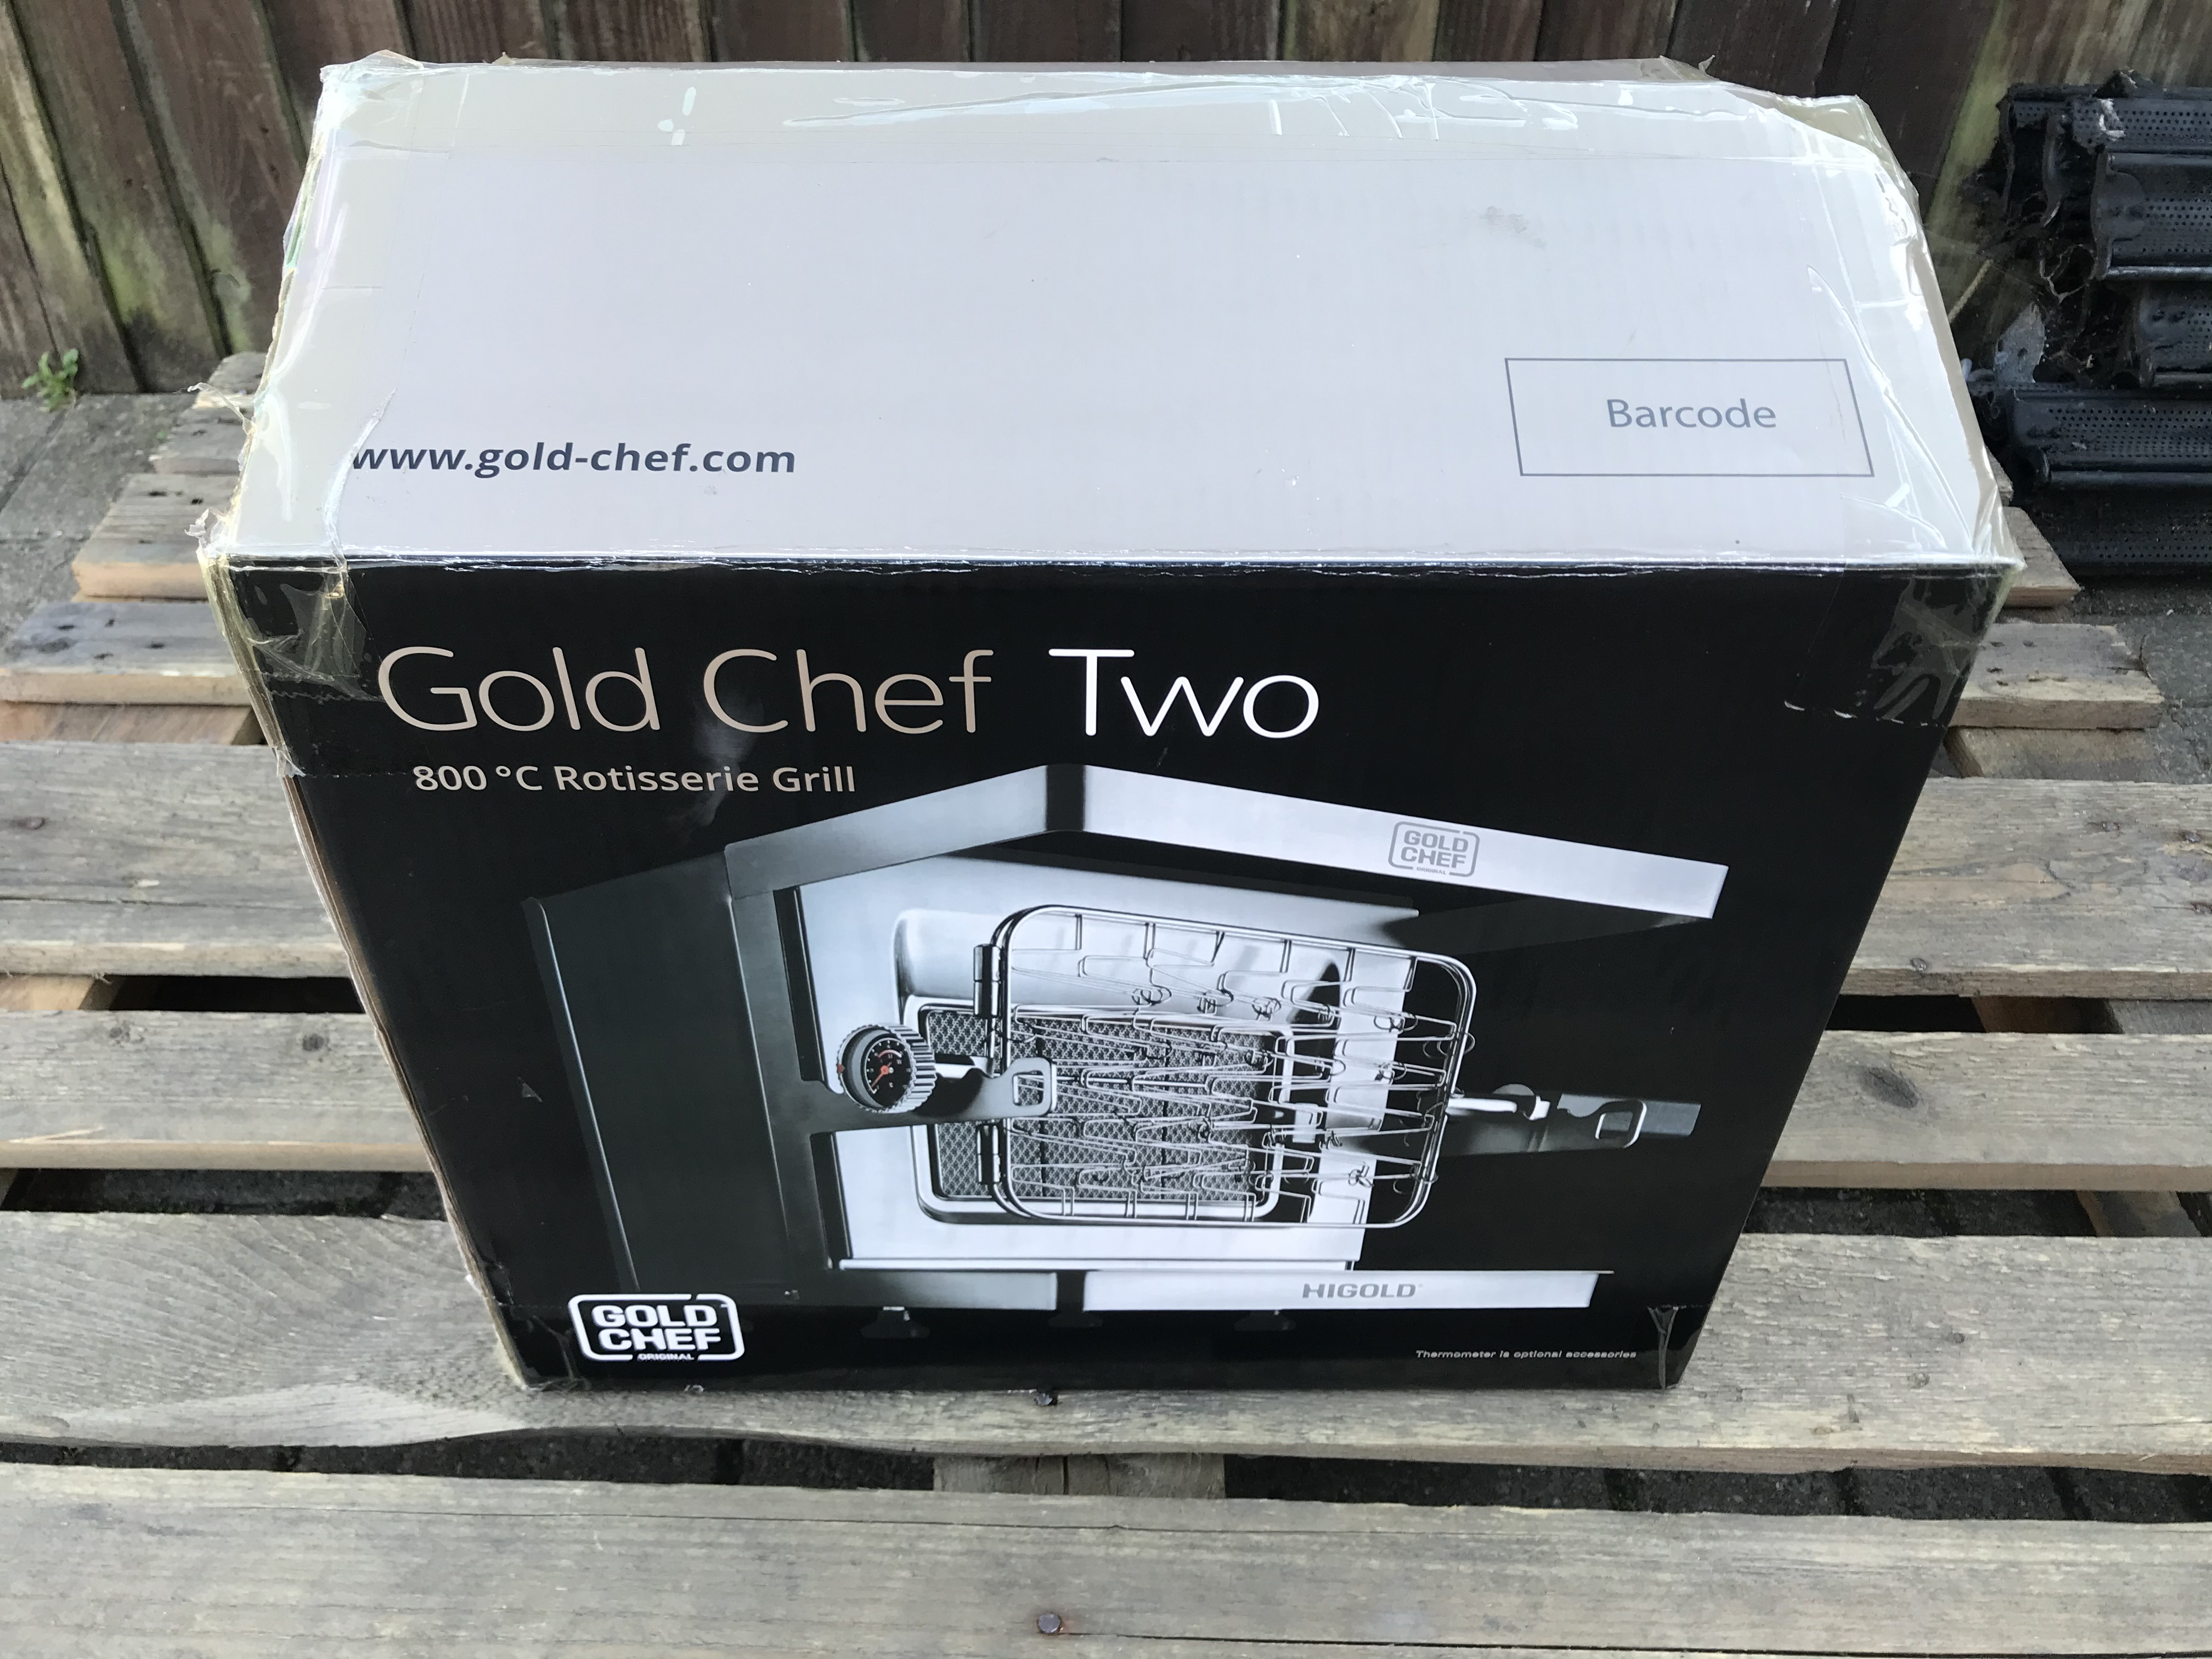 GOLD CHEF TWO 800C ROTISSERIE GRILL - Image 2 of 6